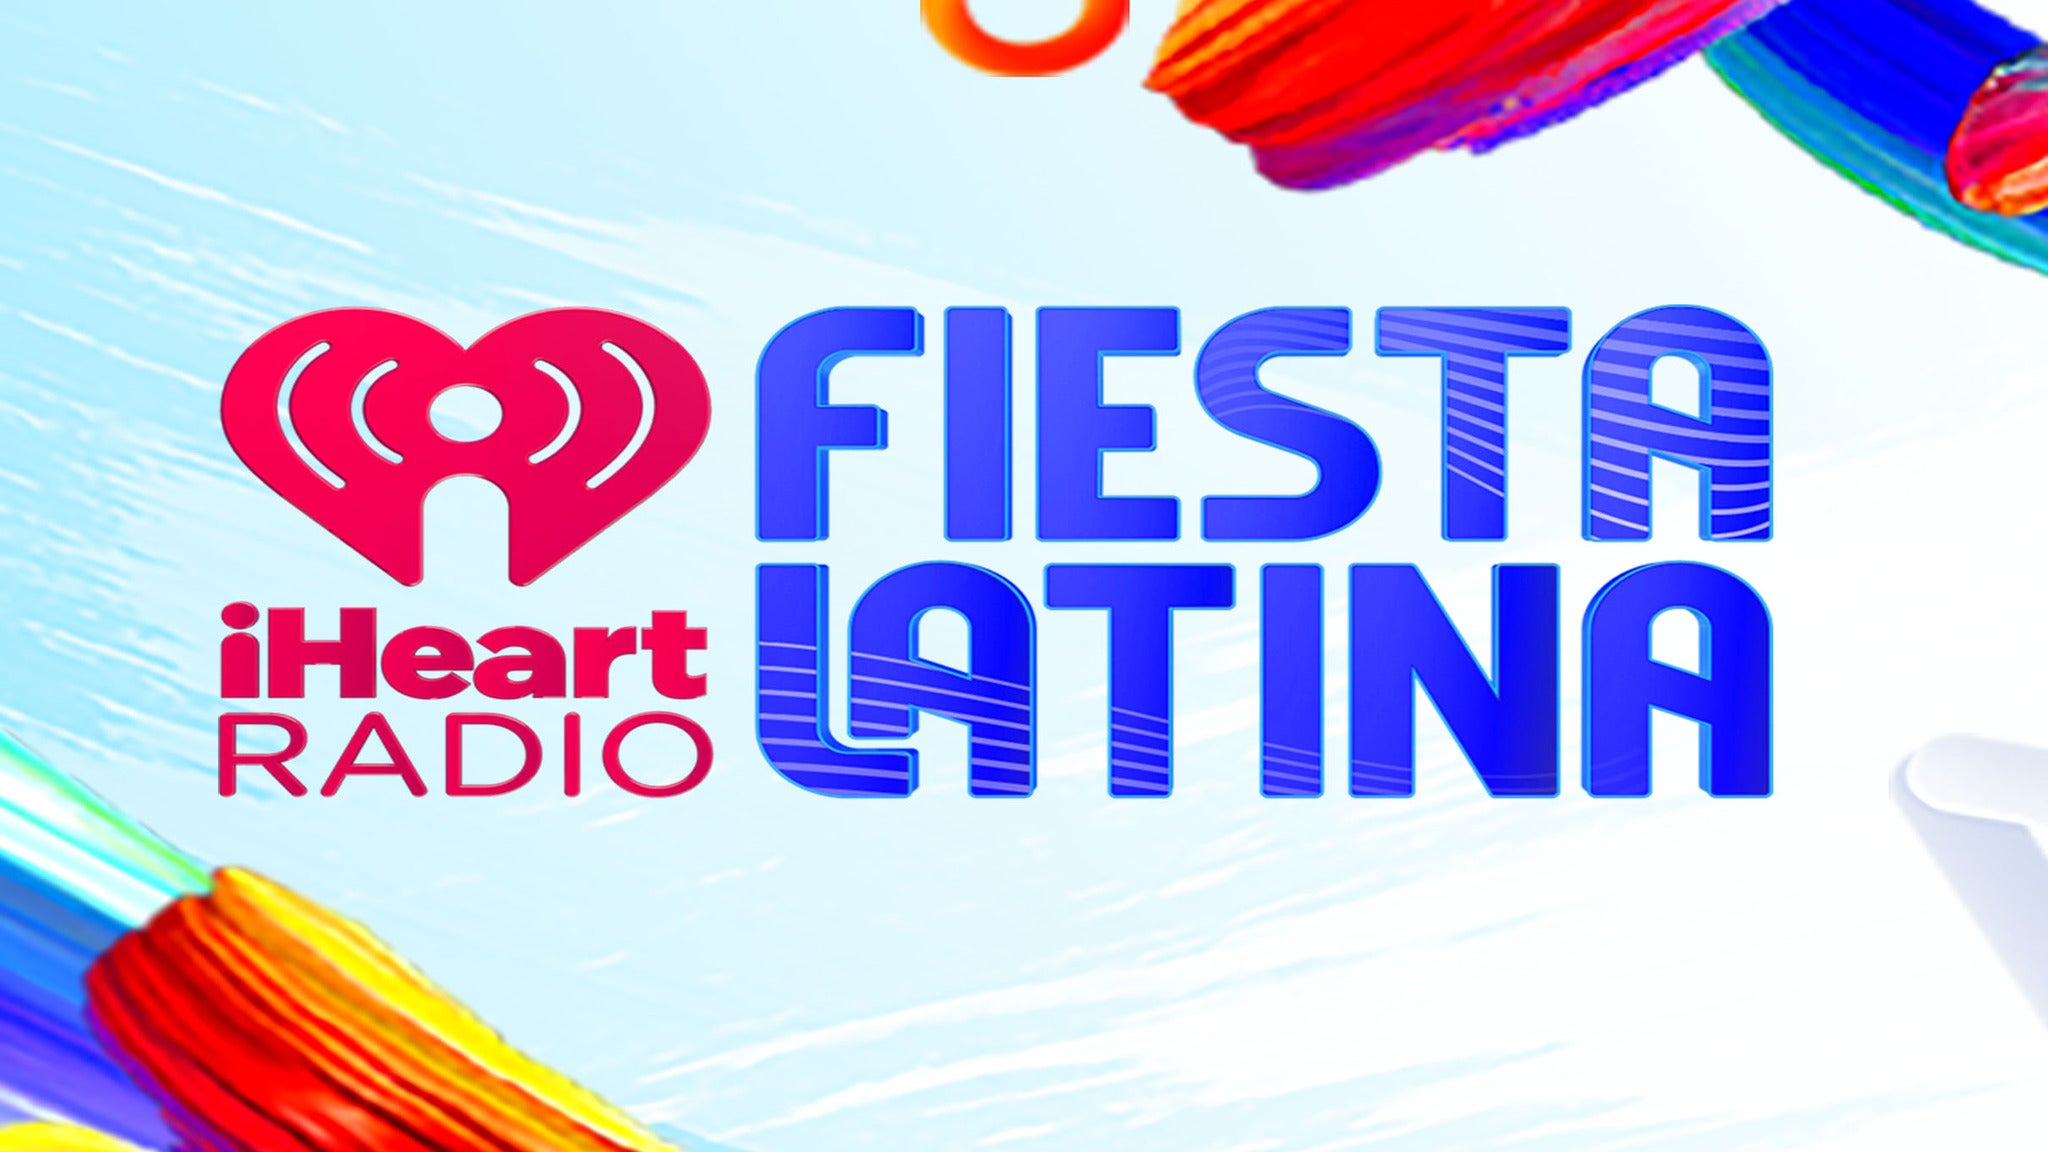 iHeartRadio Fiesta Latina at AmericanAirlines Arena